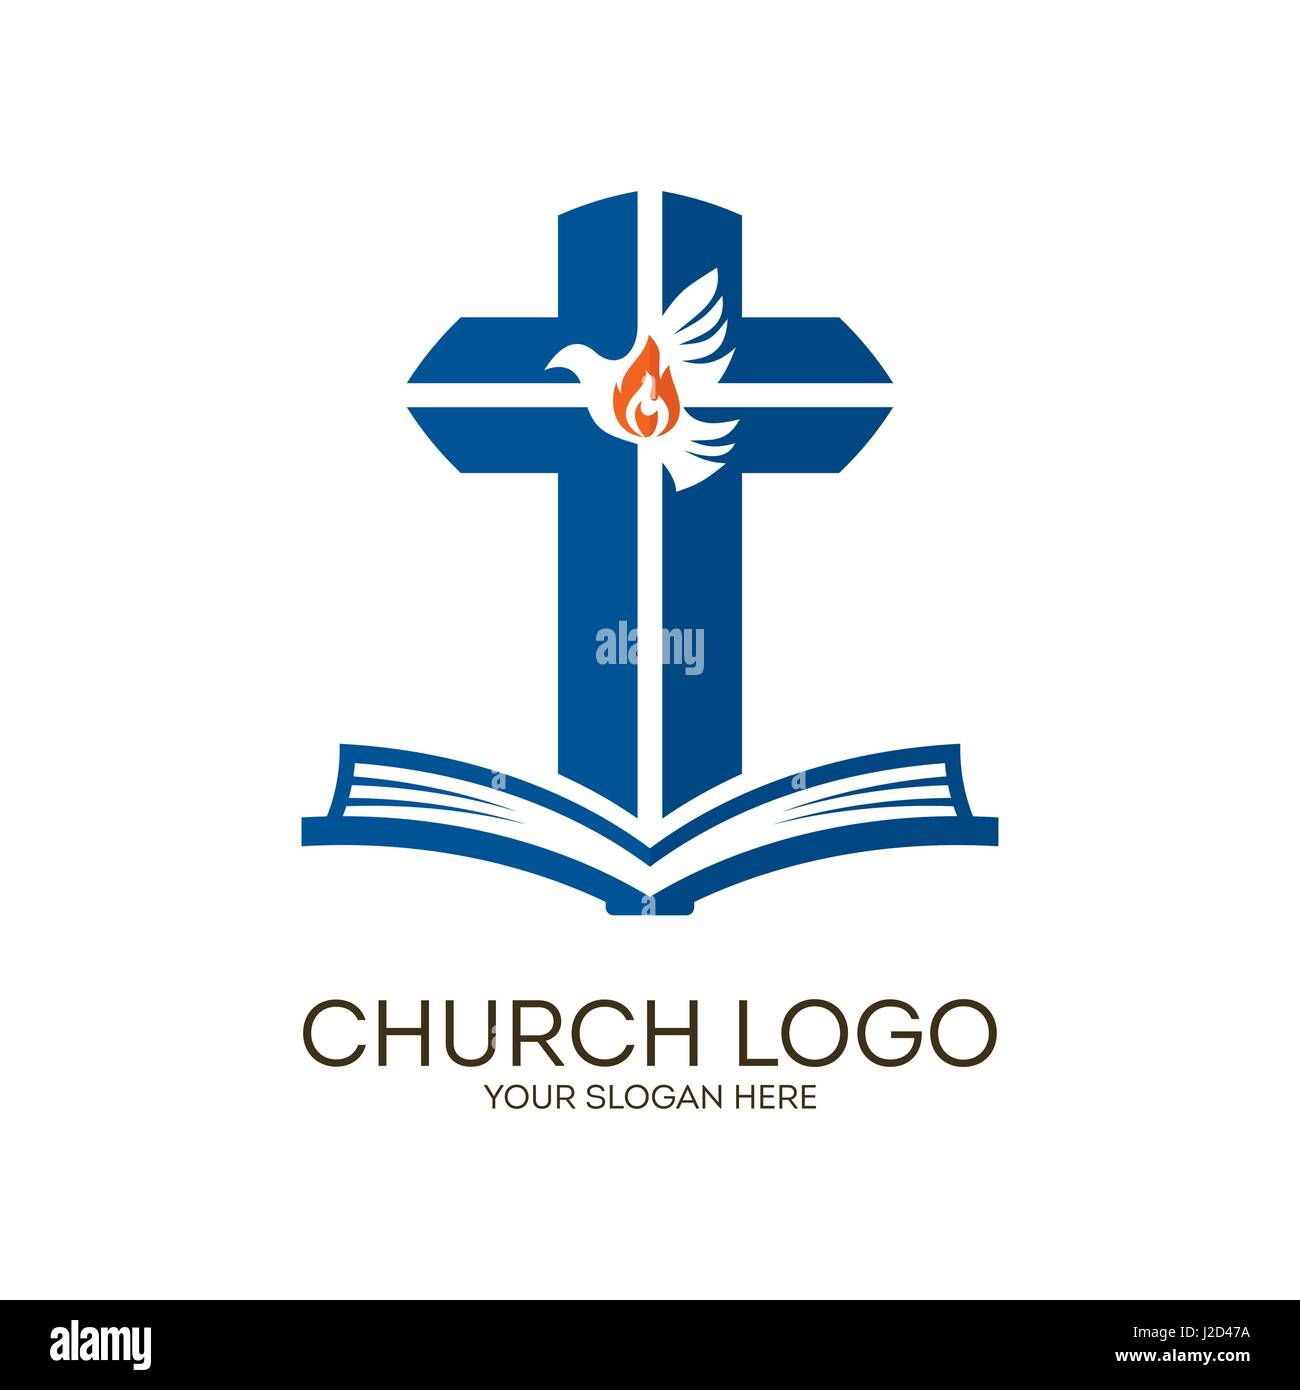 Church logo christian symbols bible cross and holy spirit dove church logo christian symbols bible cross and holy spirit dove altavistaventures Images